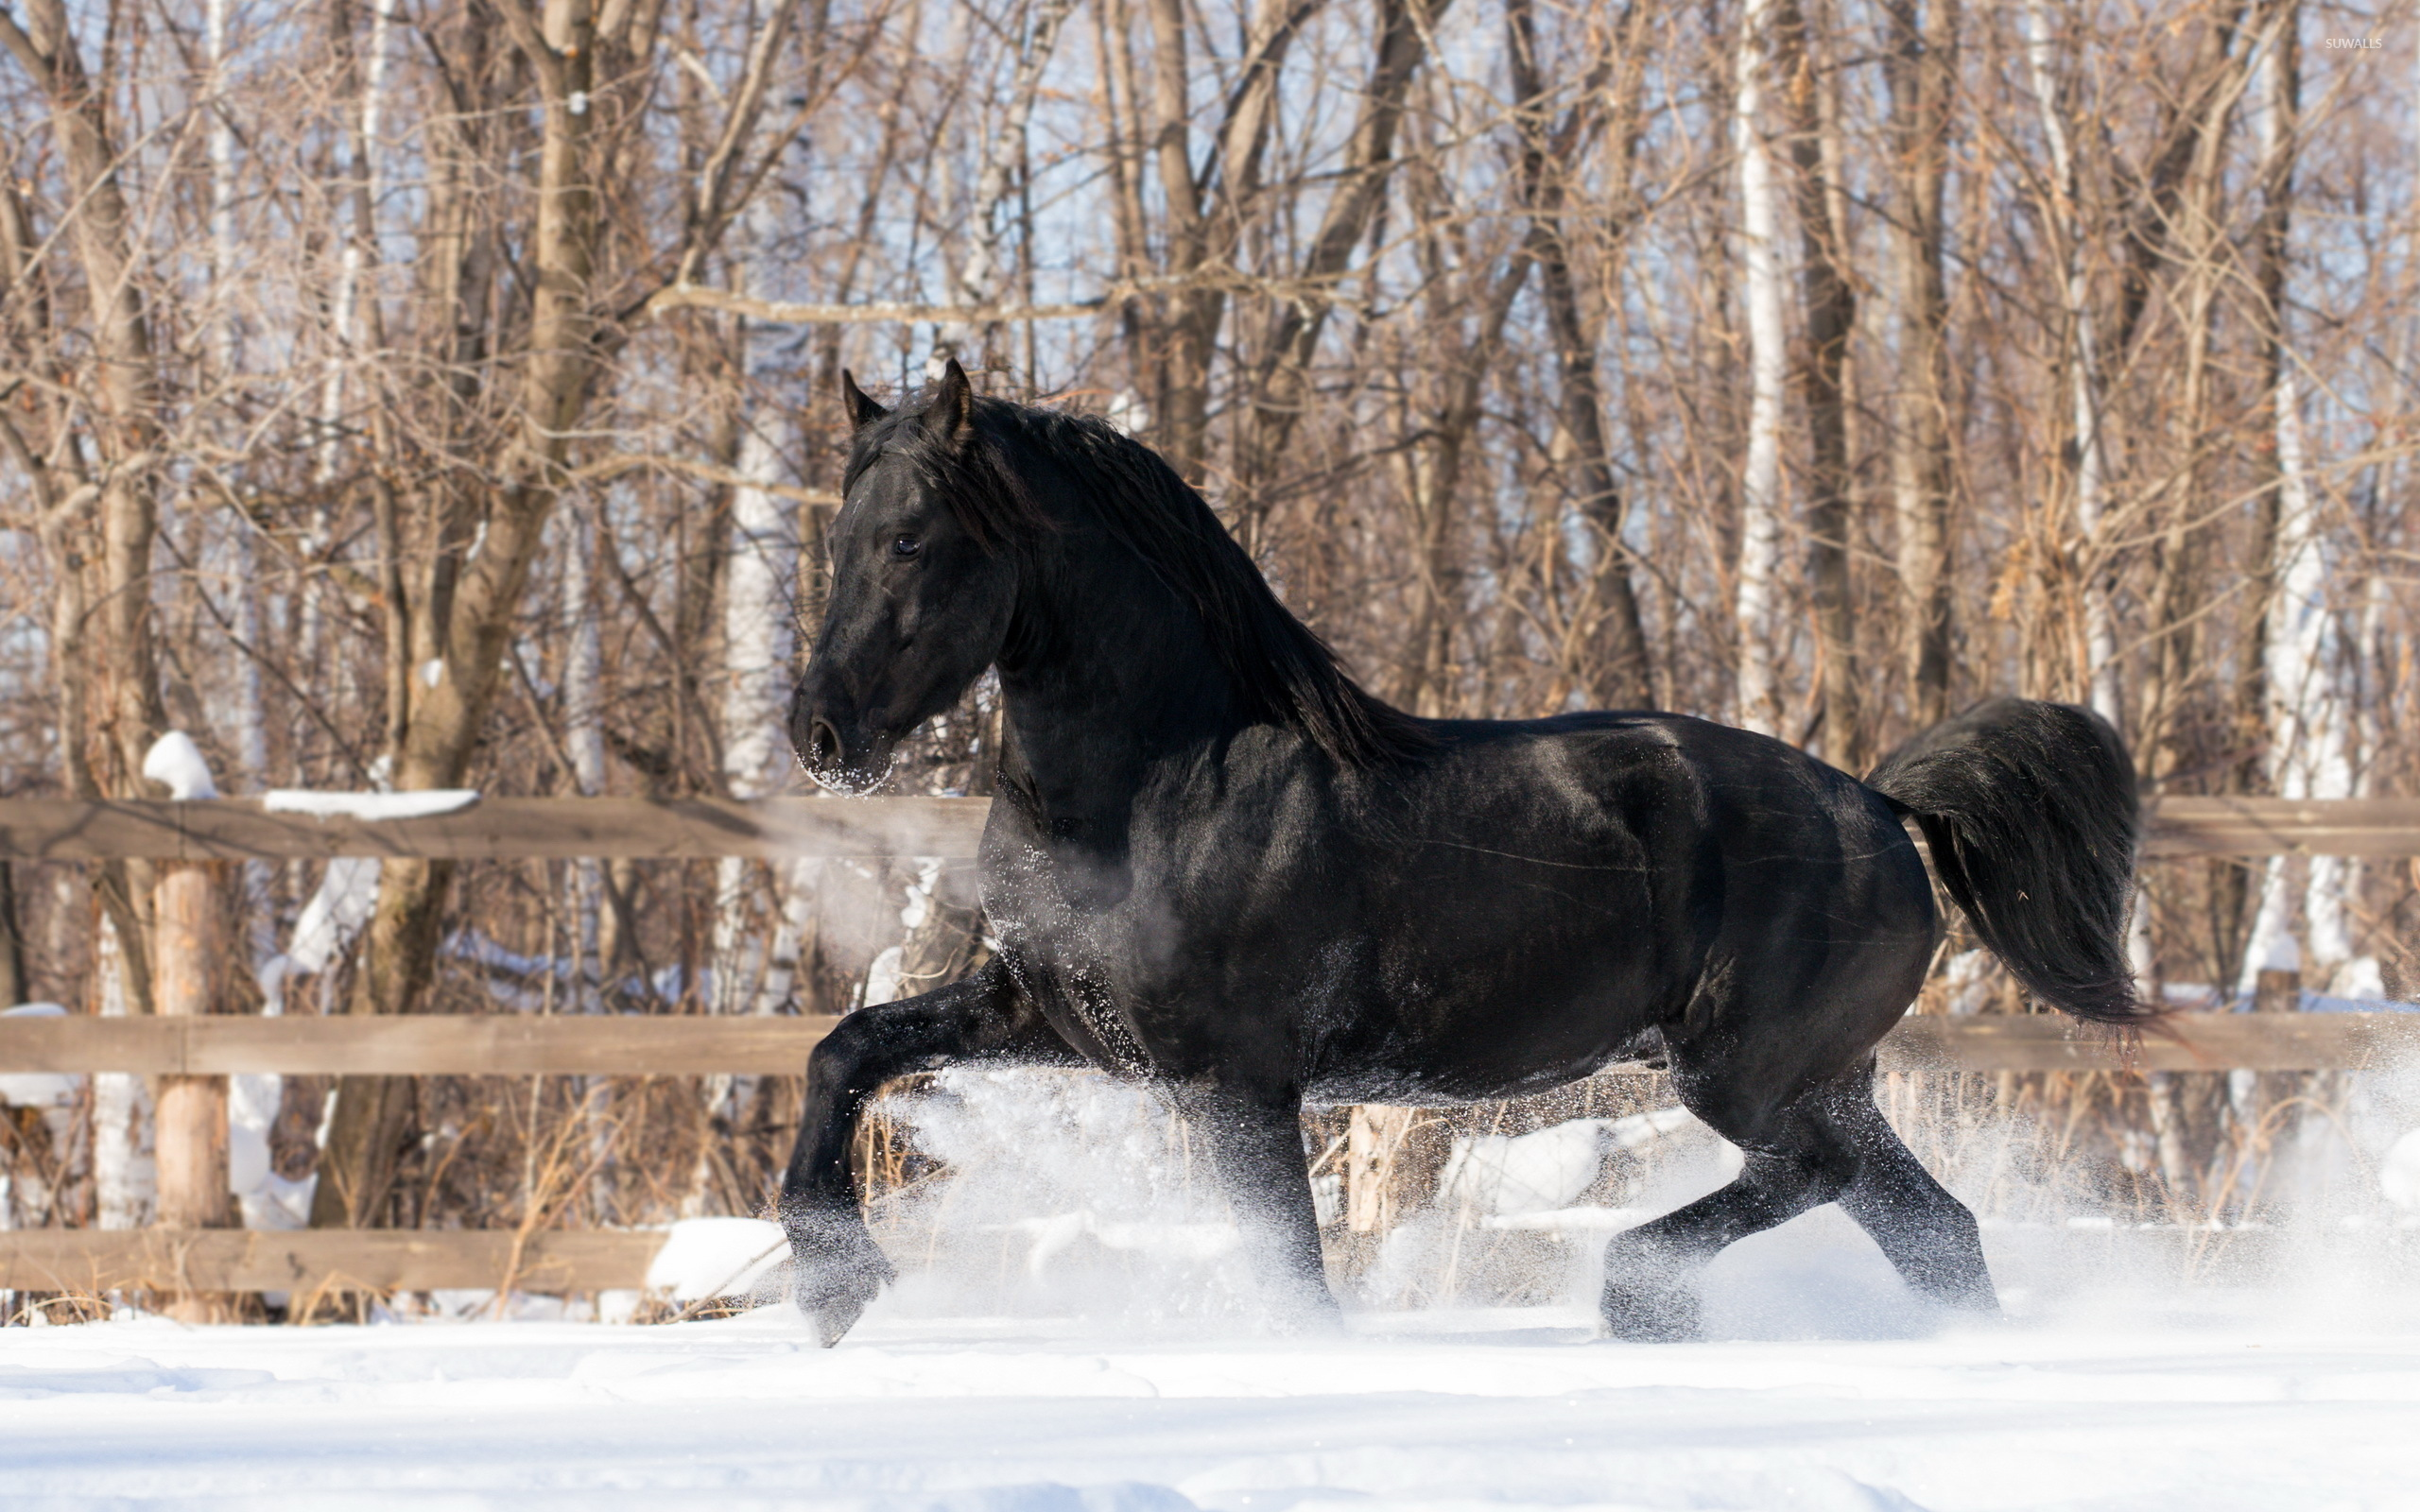 Black Horse In The Snow Wallpaper Animal Wallpapers 50236